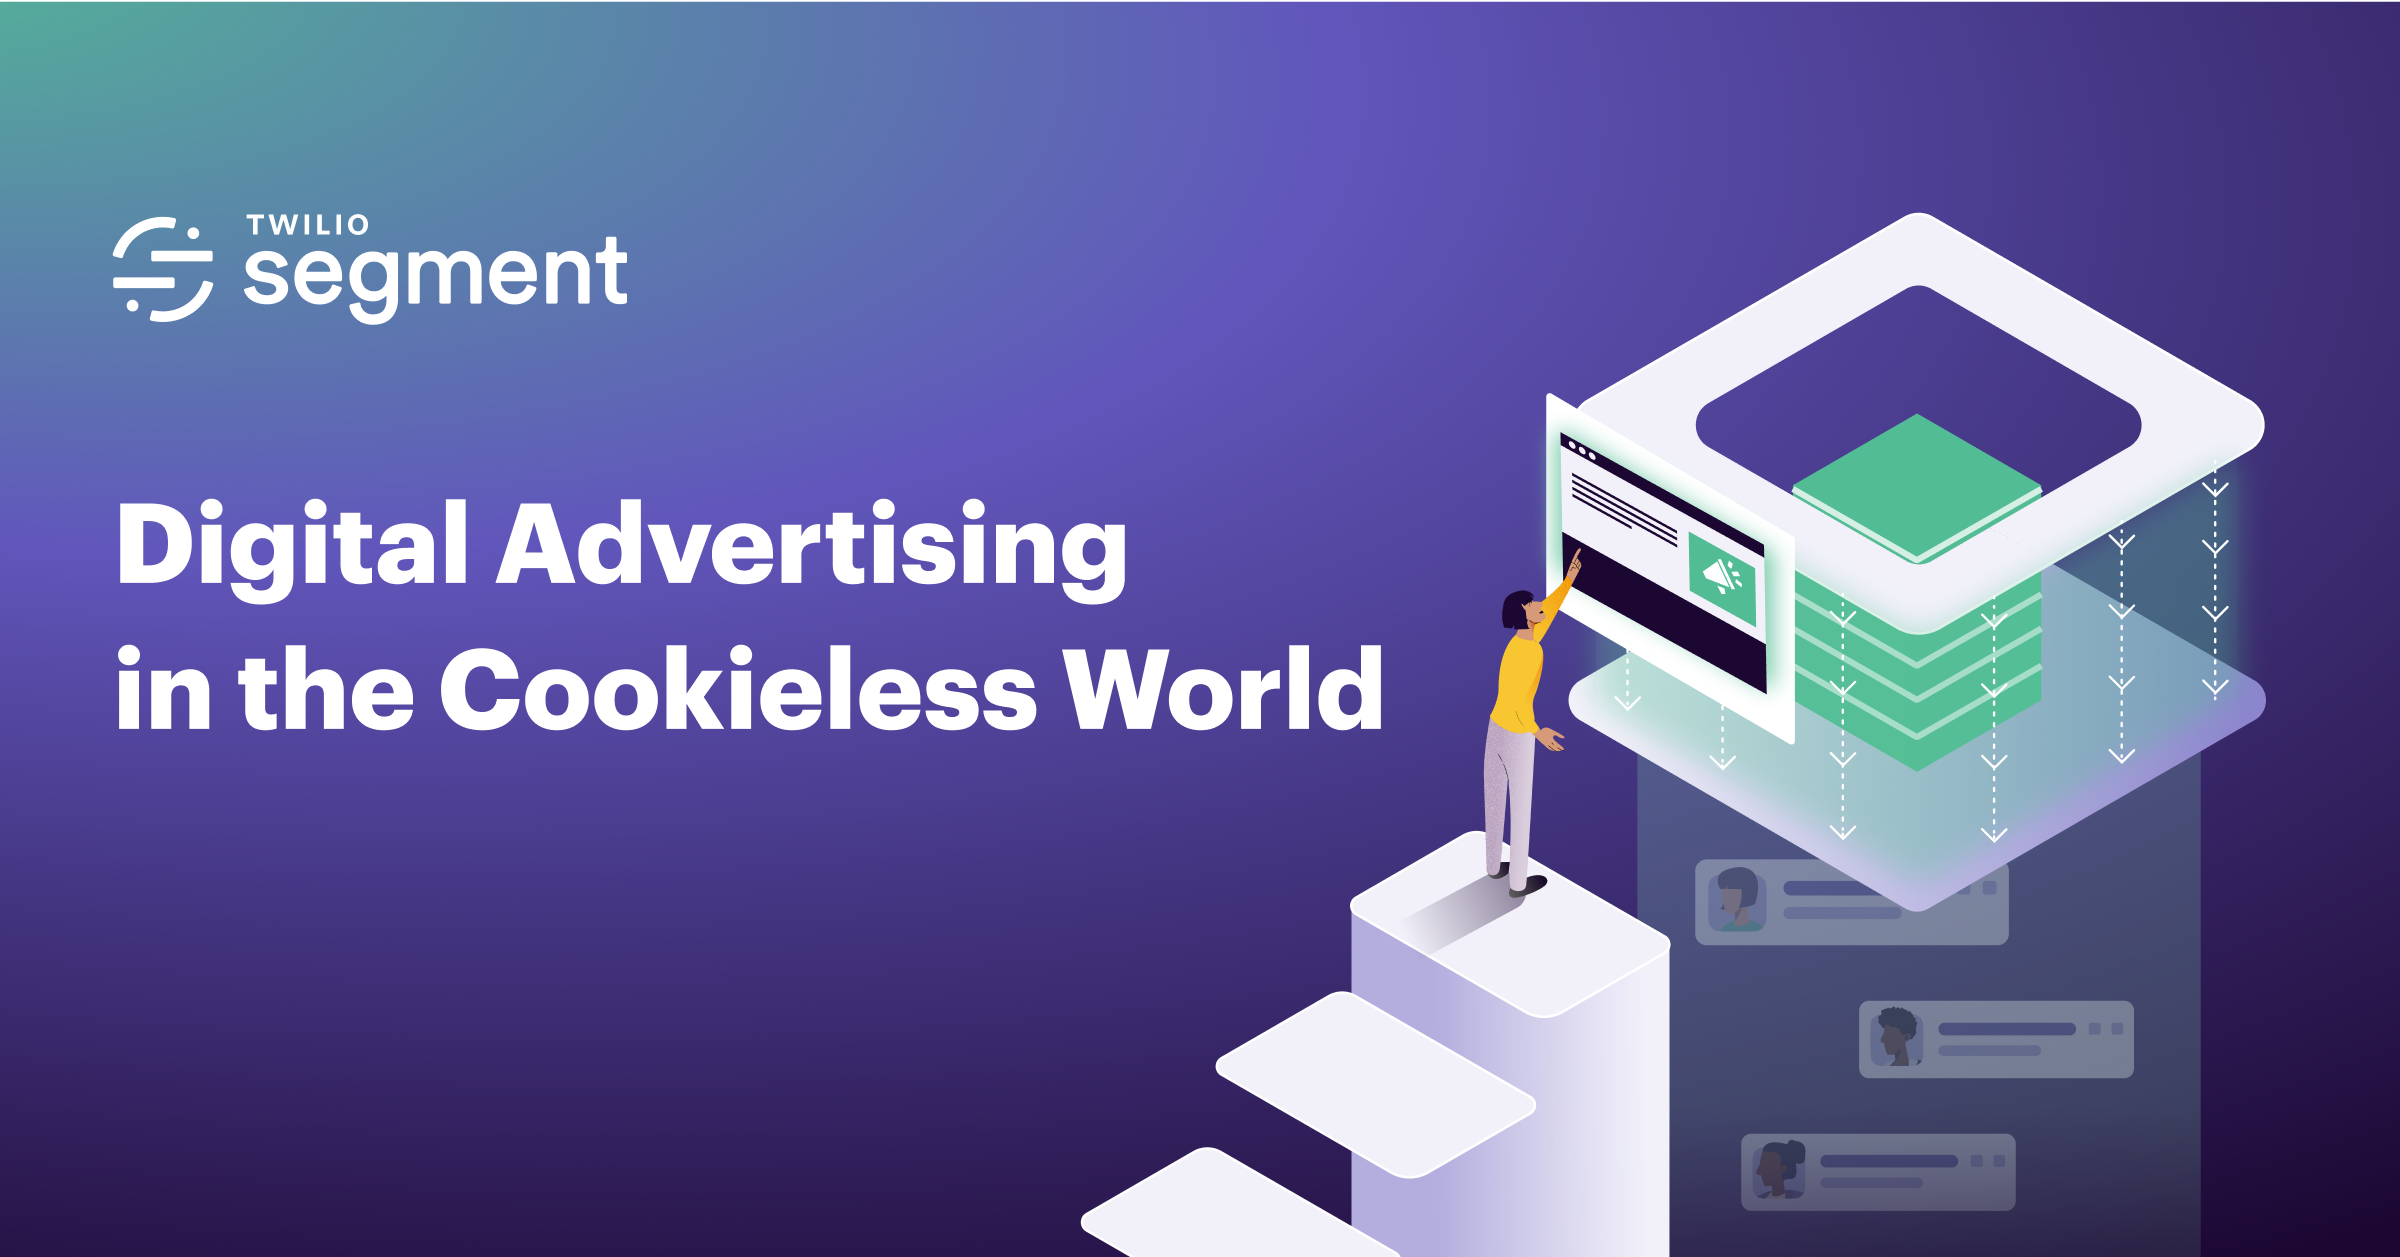 Digital Advertising in the Cookieless World